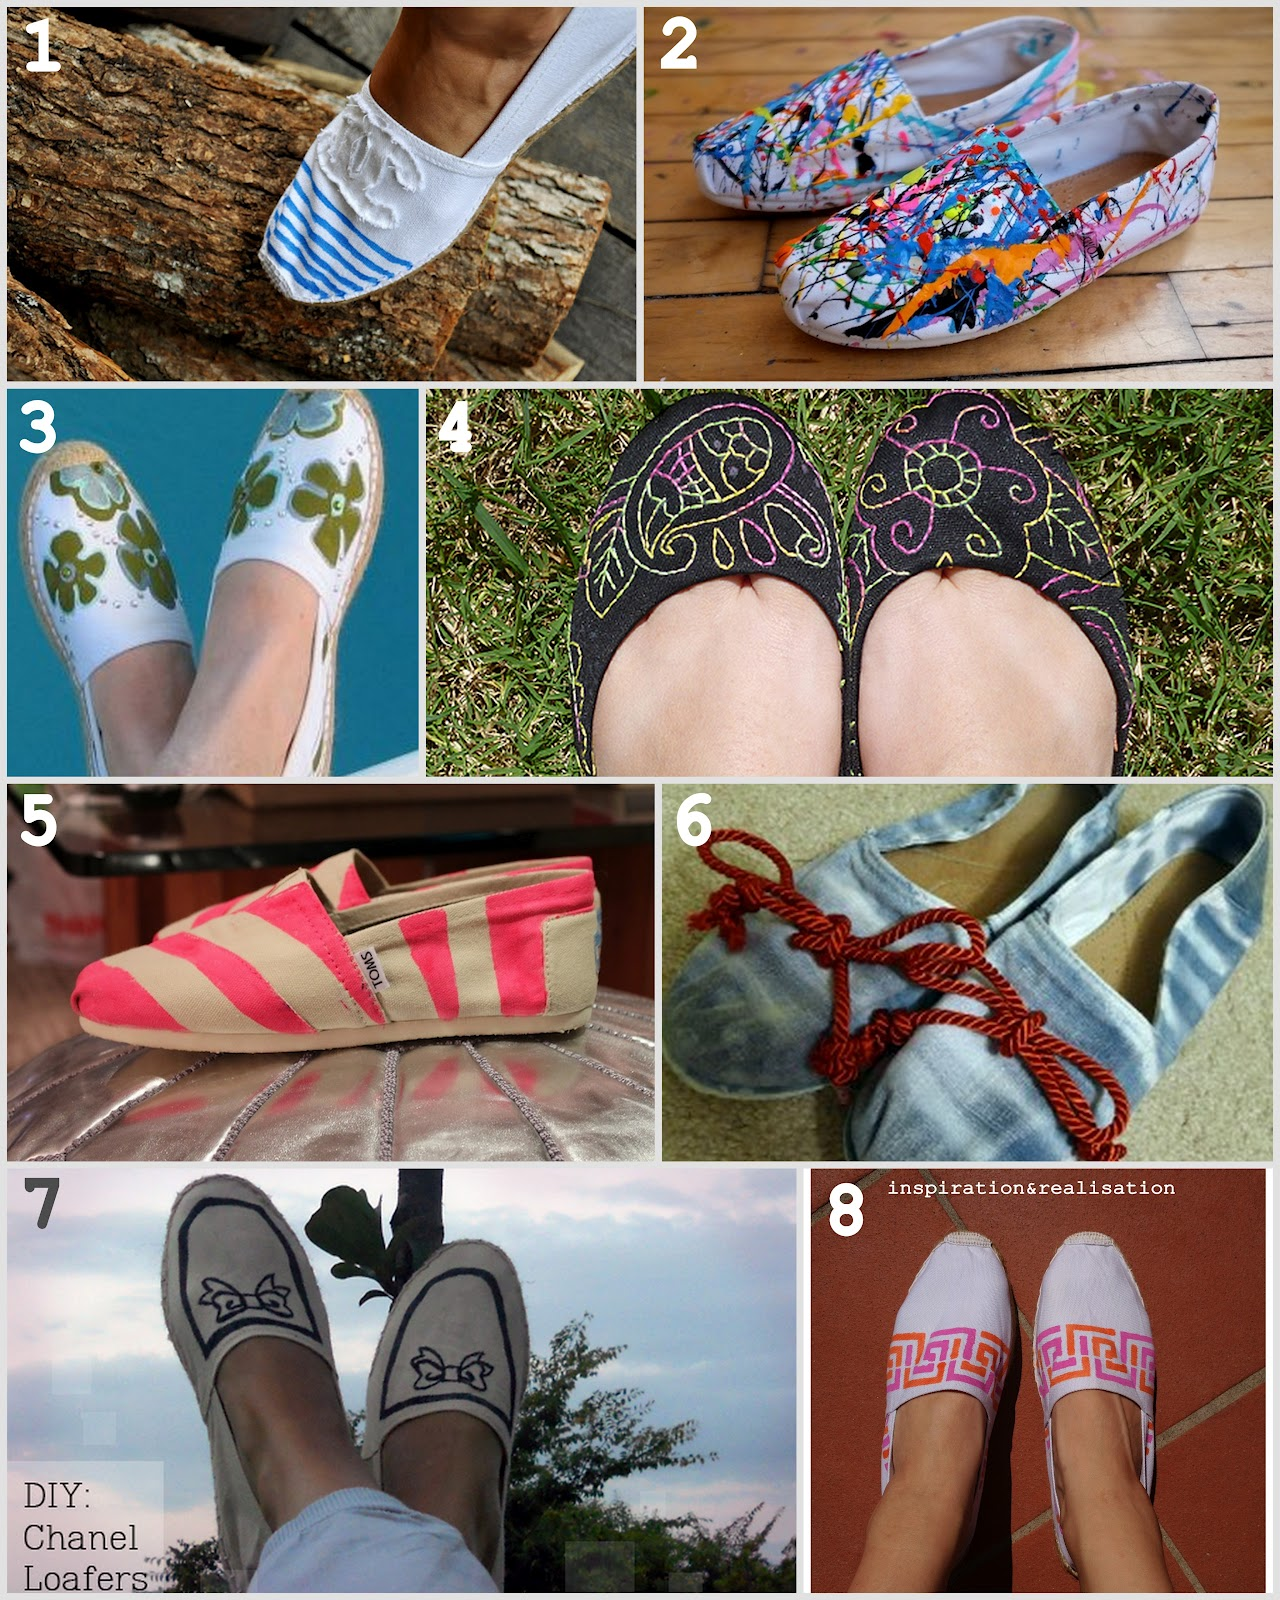 ... and realisation: DIY fashion blog: 8 of my favorite canvas shoes DIY